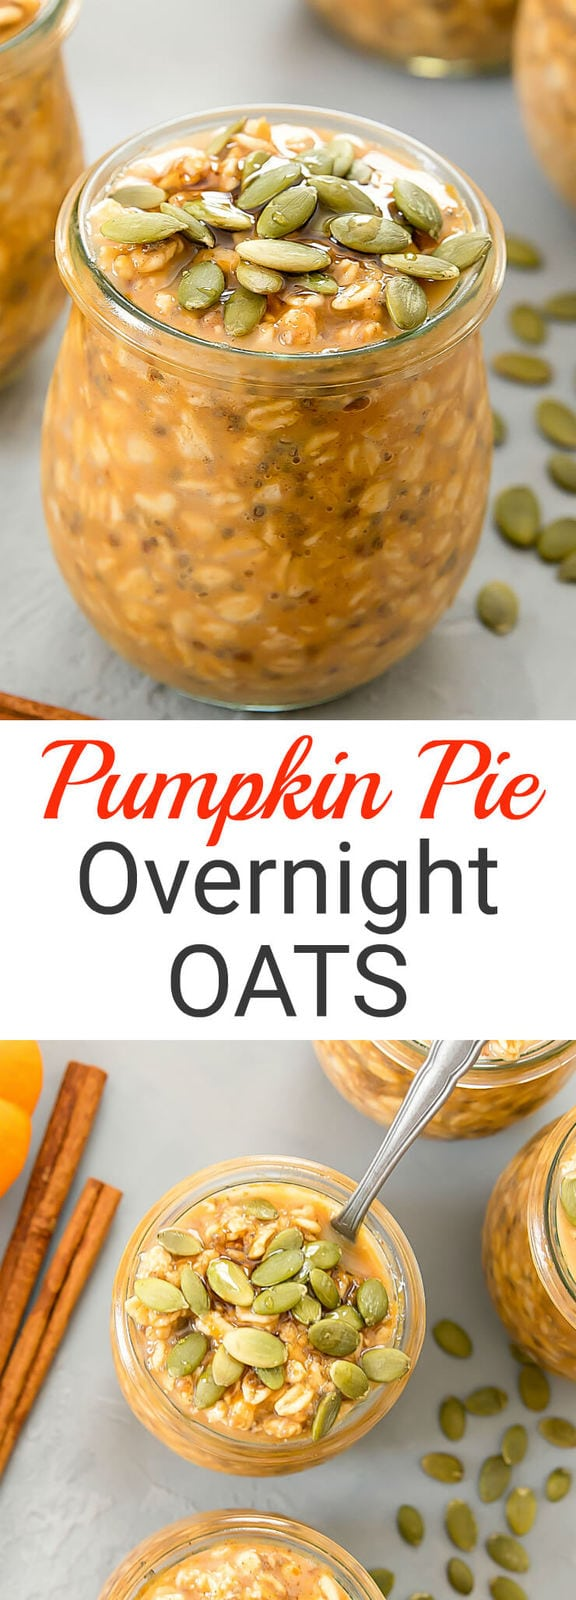 Pumpkin Pie Overnight Oats. Easy, no-cook oats that taste like pumpkin pie filling and can be prepped ahead of time for weekly meal prep.